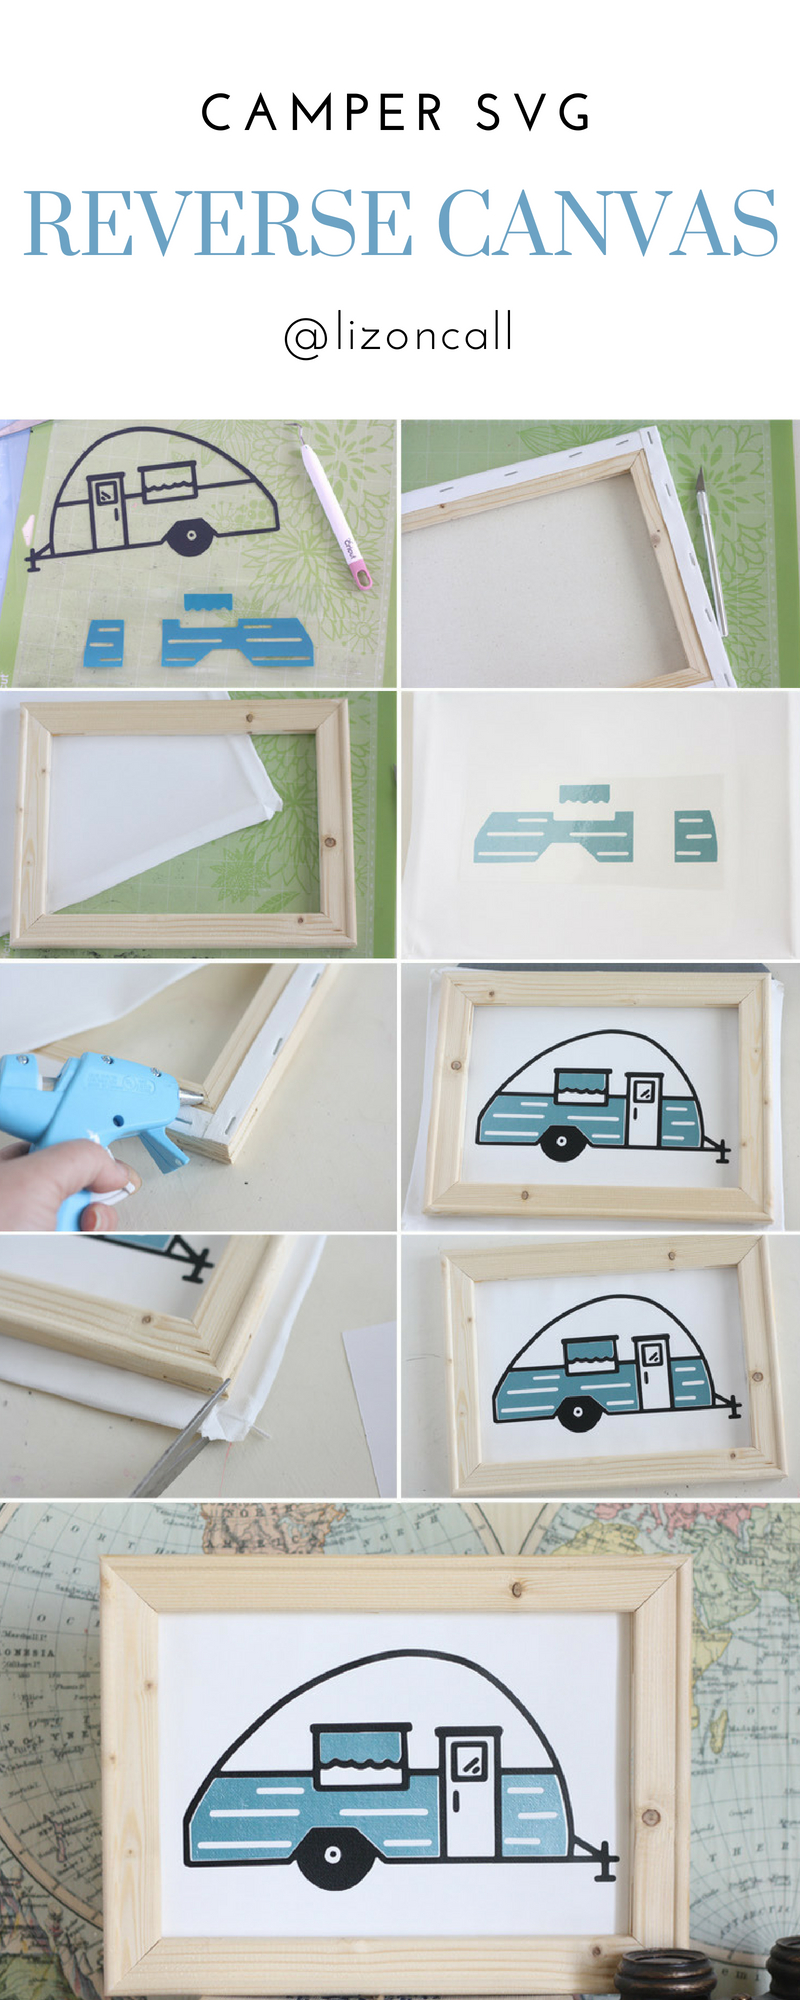 Summer time for us means trips up to the mountains to do some camping. I'm sharing our love of the outdoors with this fun camper life reverse canvas tutorial.